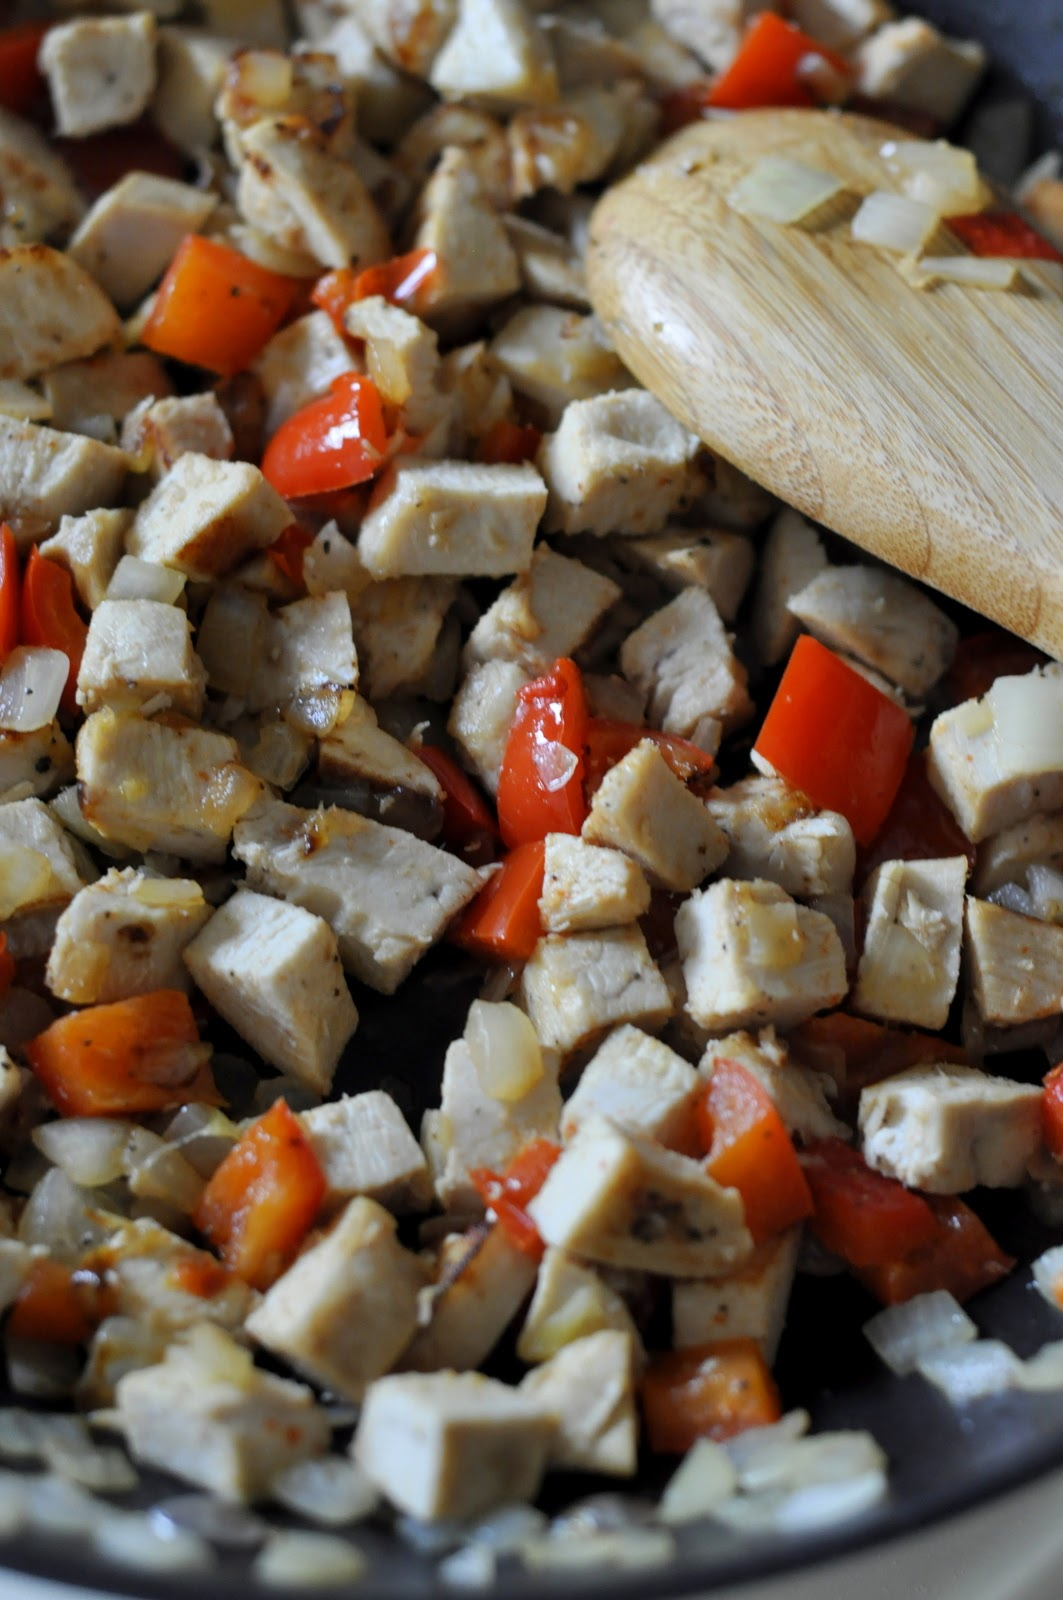 The topping for our Barbecue Chicken Pizza - diced chicken and sauteed bell peppers and onions!